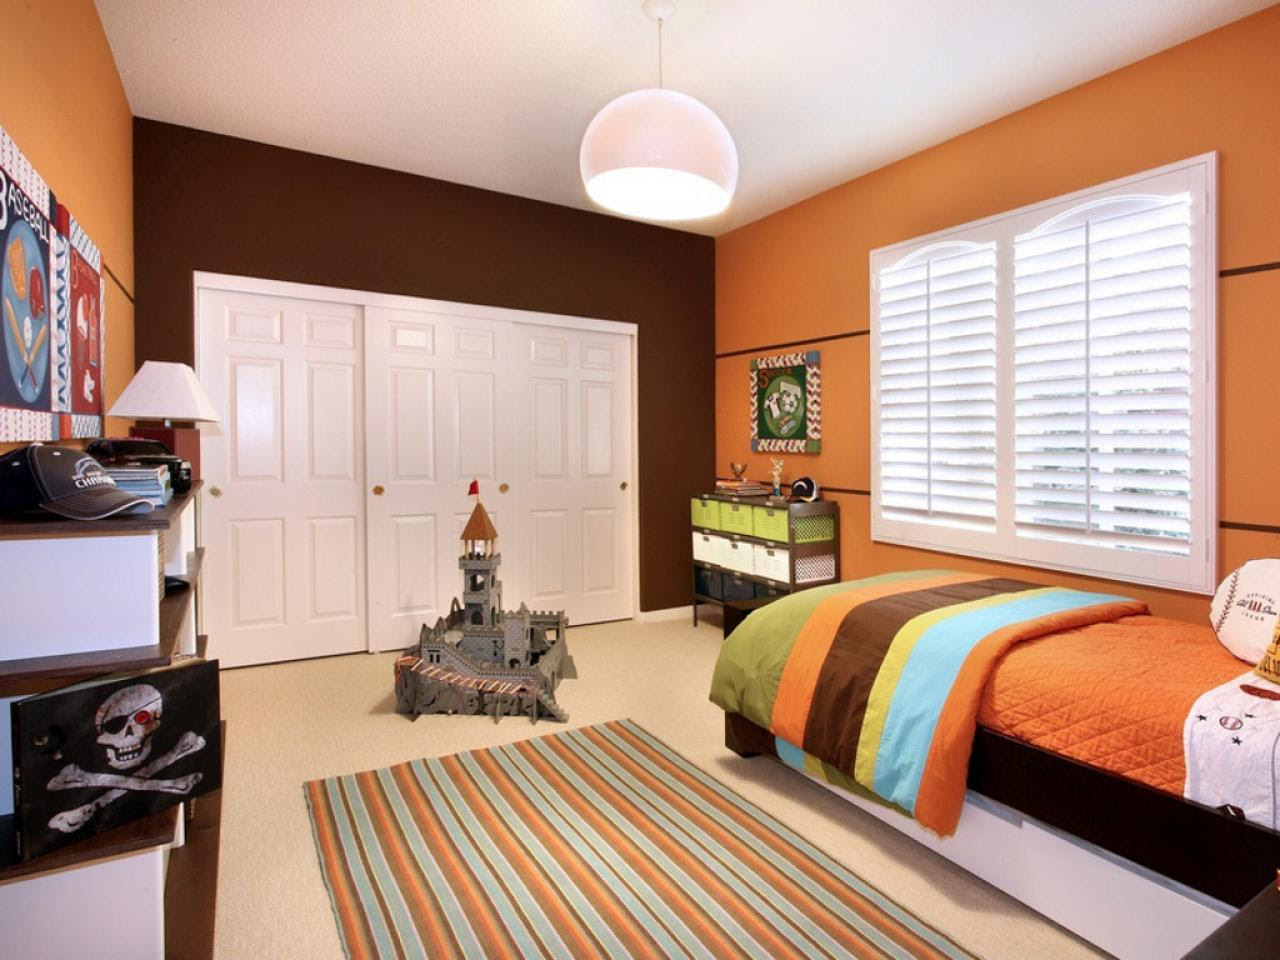 Bedroom Color Ideas - the Nuance of Choosing Tone - HomesFeed